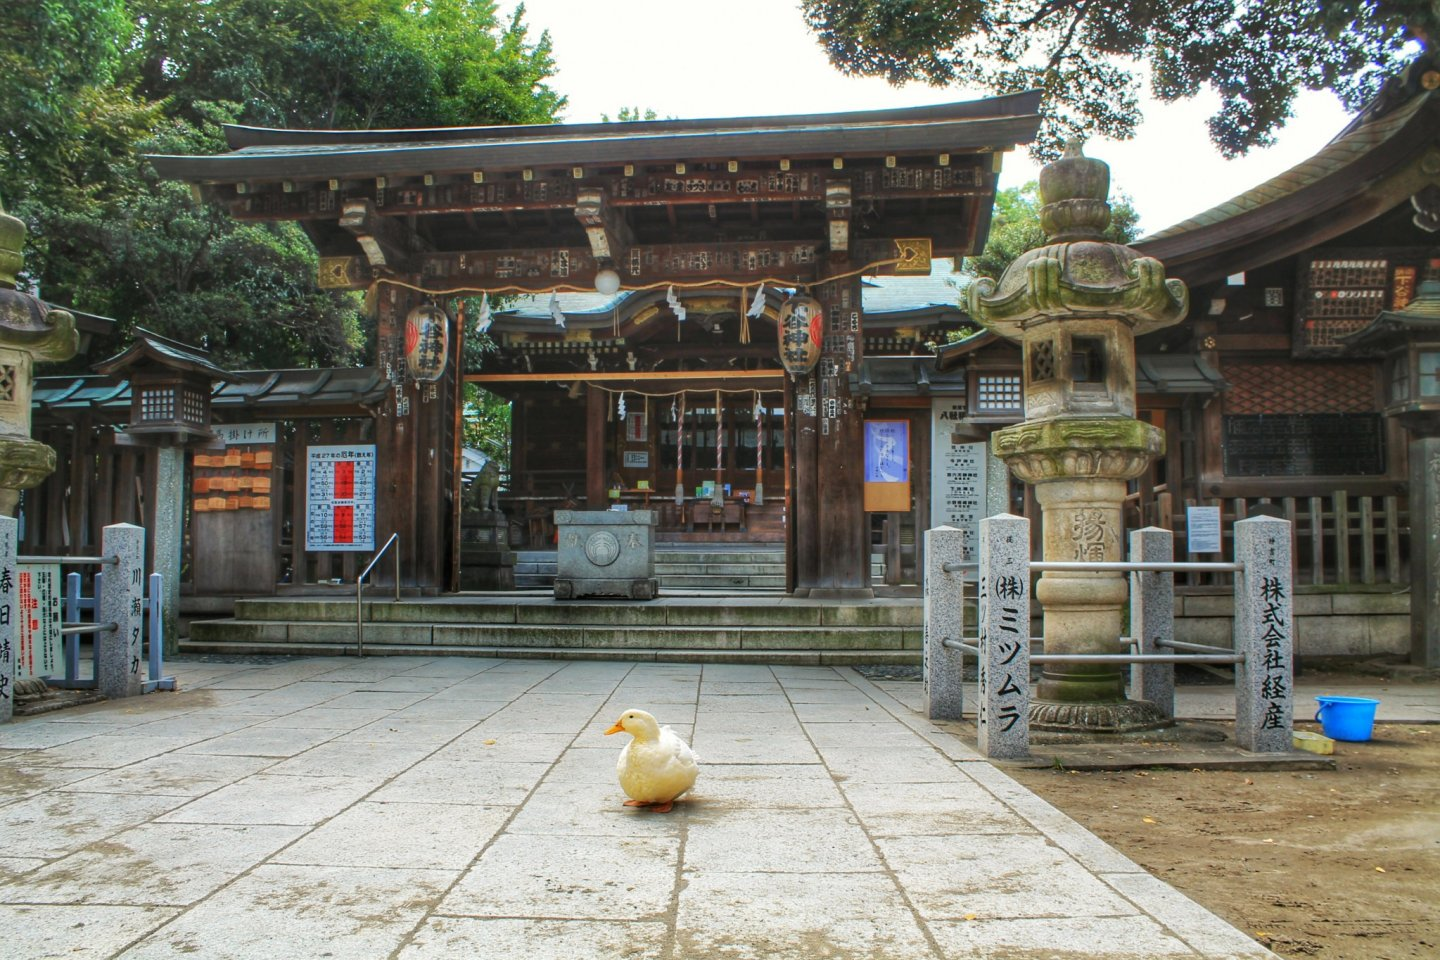 The main building of Shitaya Shrine and the goose in front